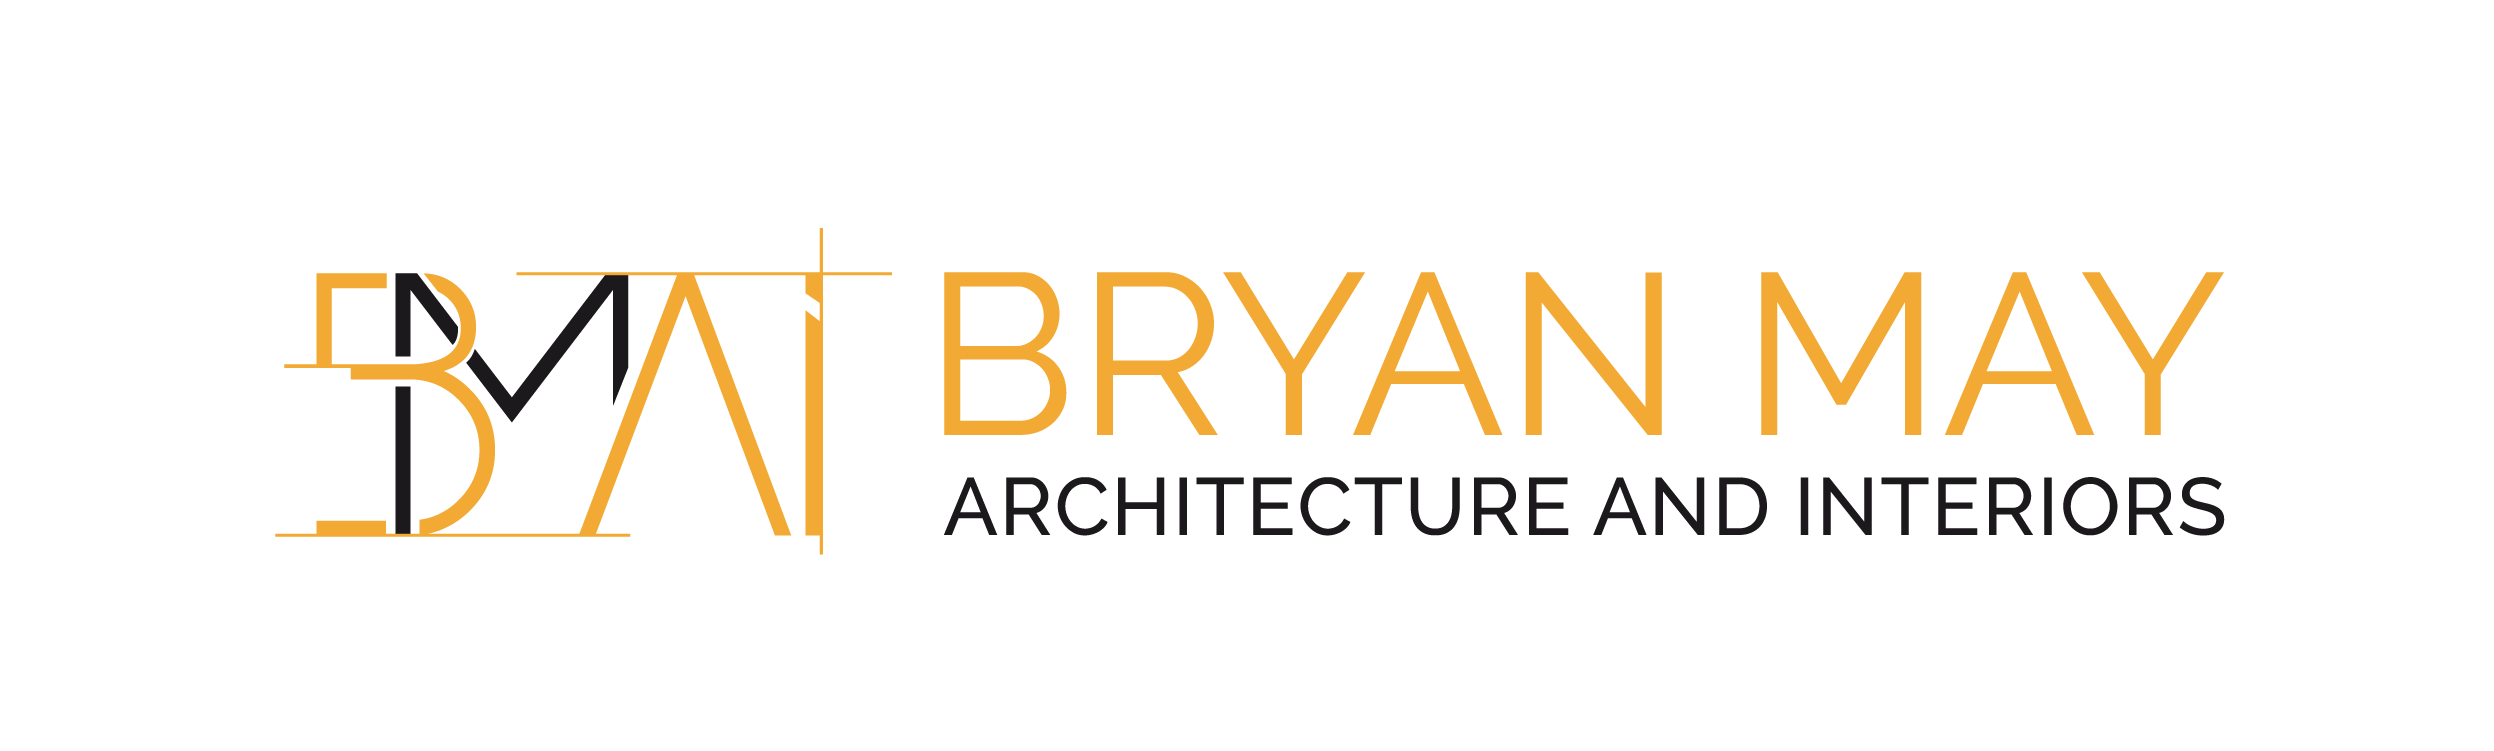 Bryan May Architecture + Interiors